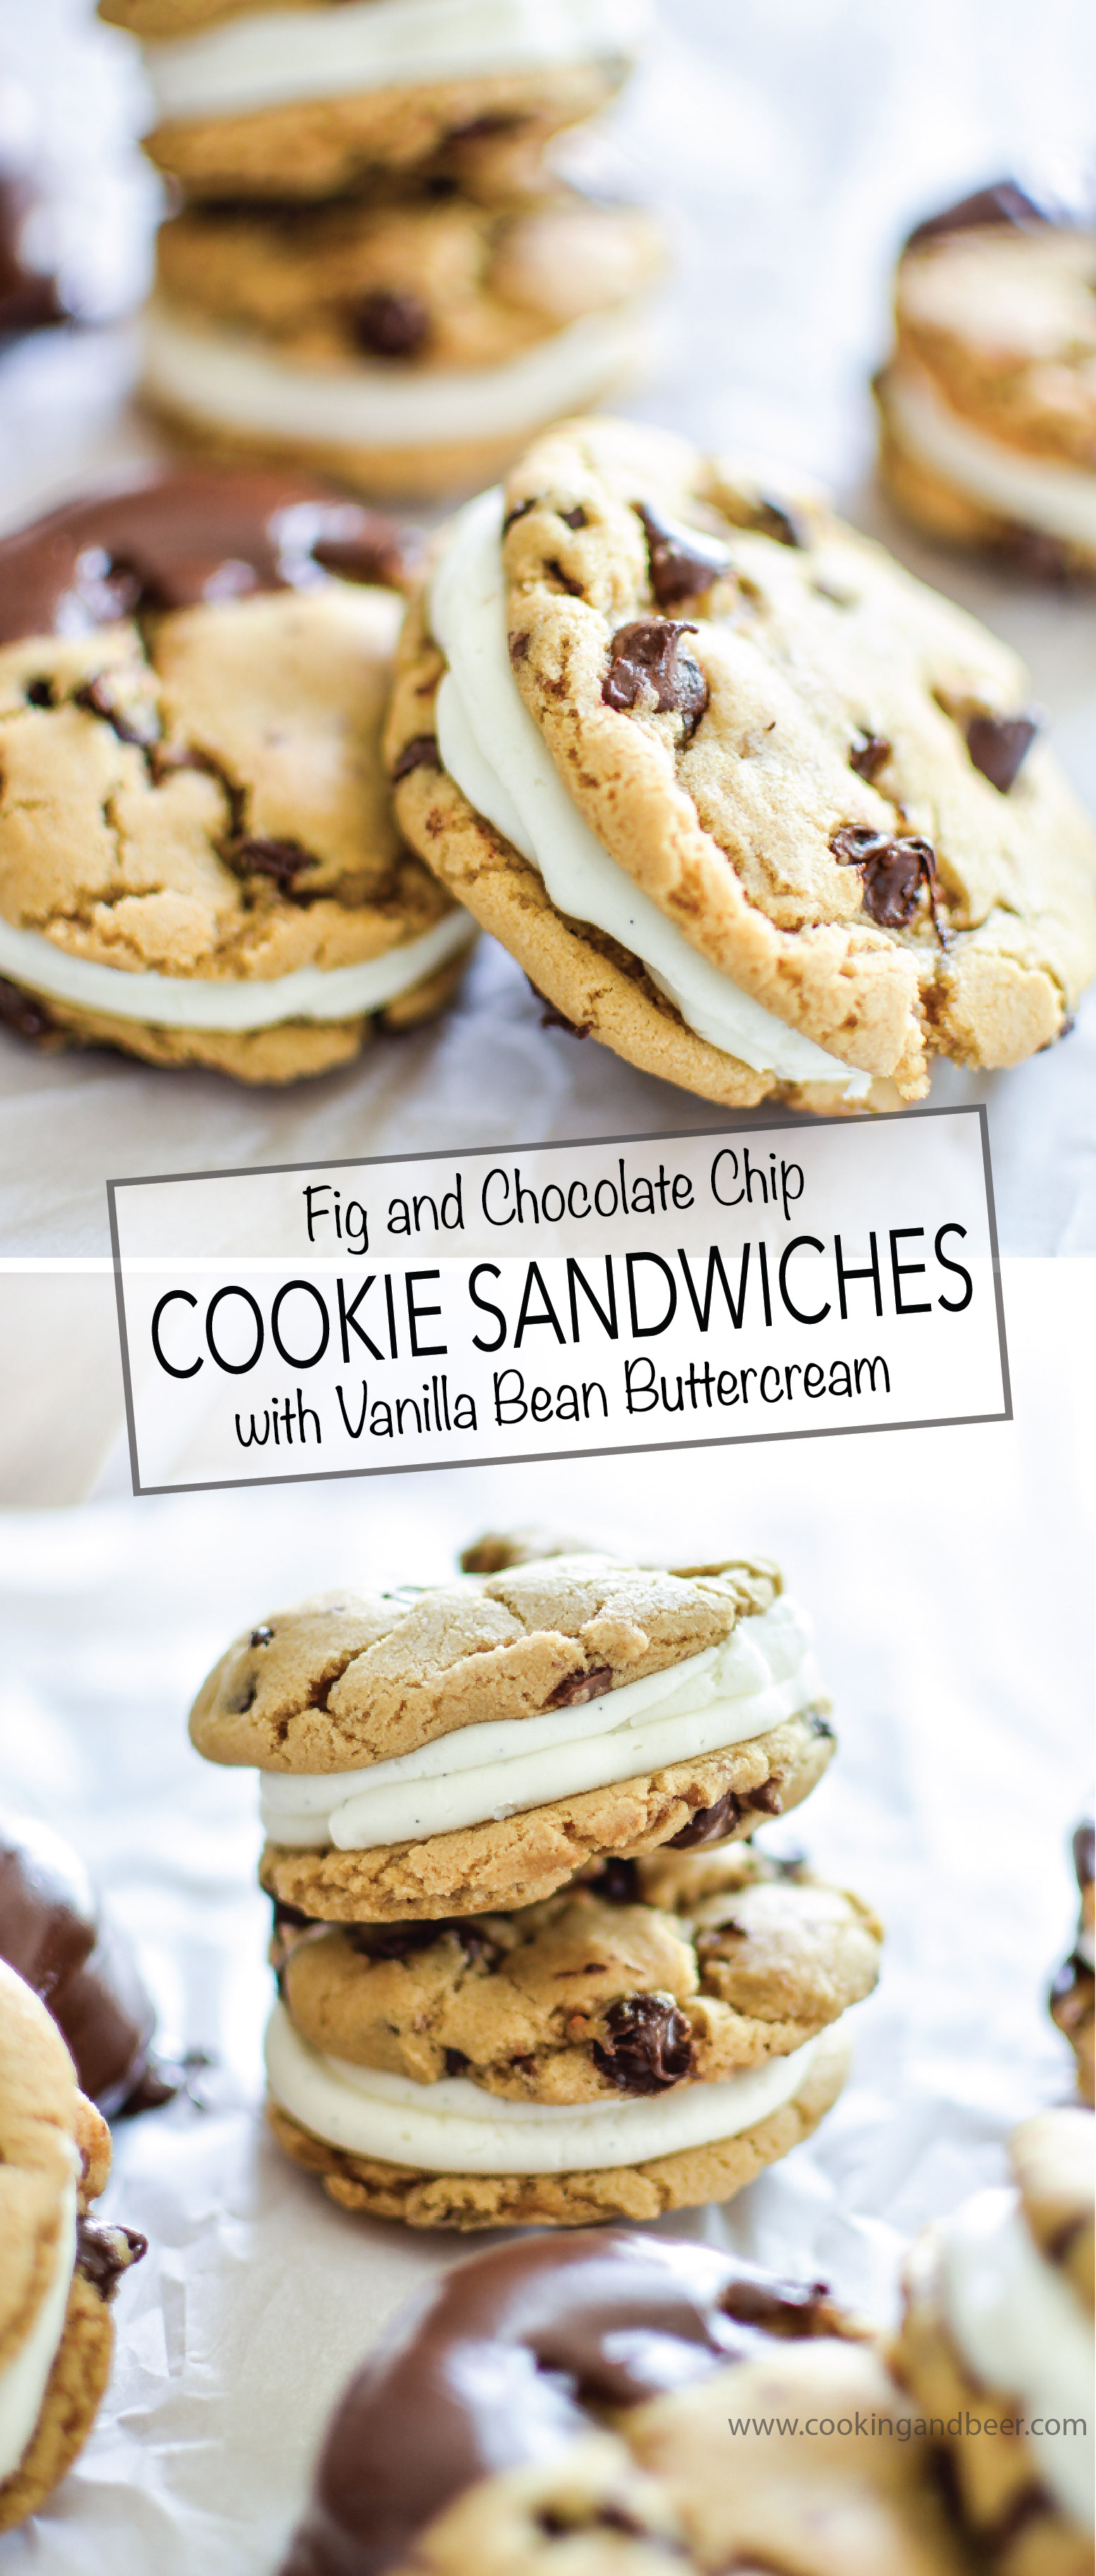 Fig and Chocolate Chip Cookie Sandwiches with Vanilla Bean Buttercream are a fun twist on a dessert classic! | www.cookingandbeer.com